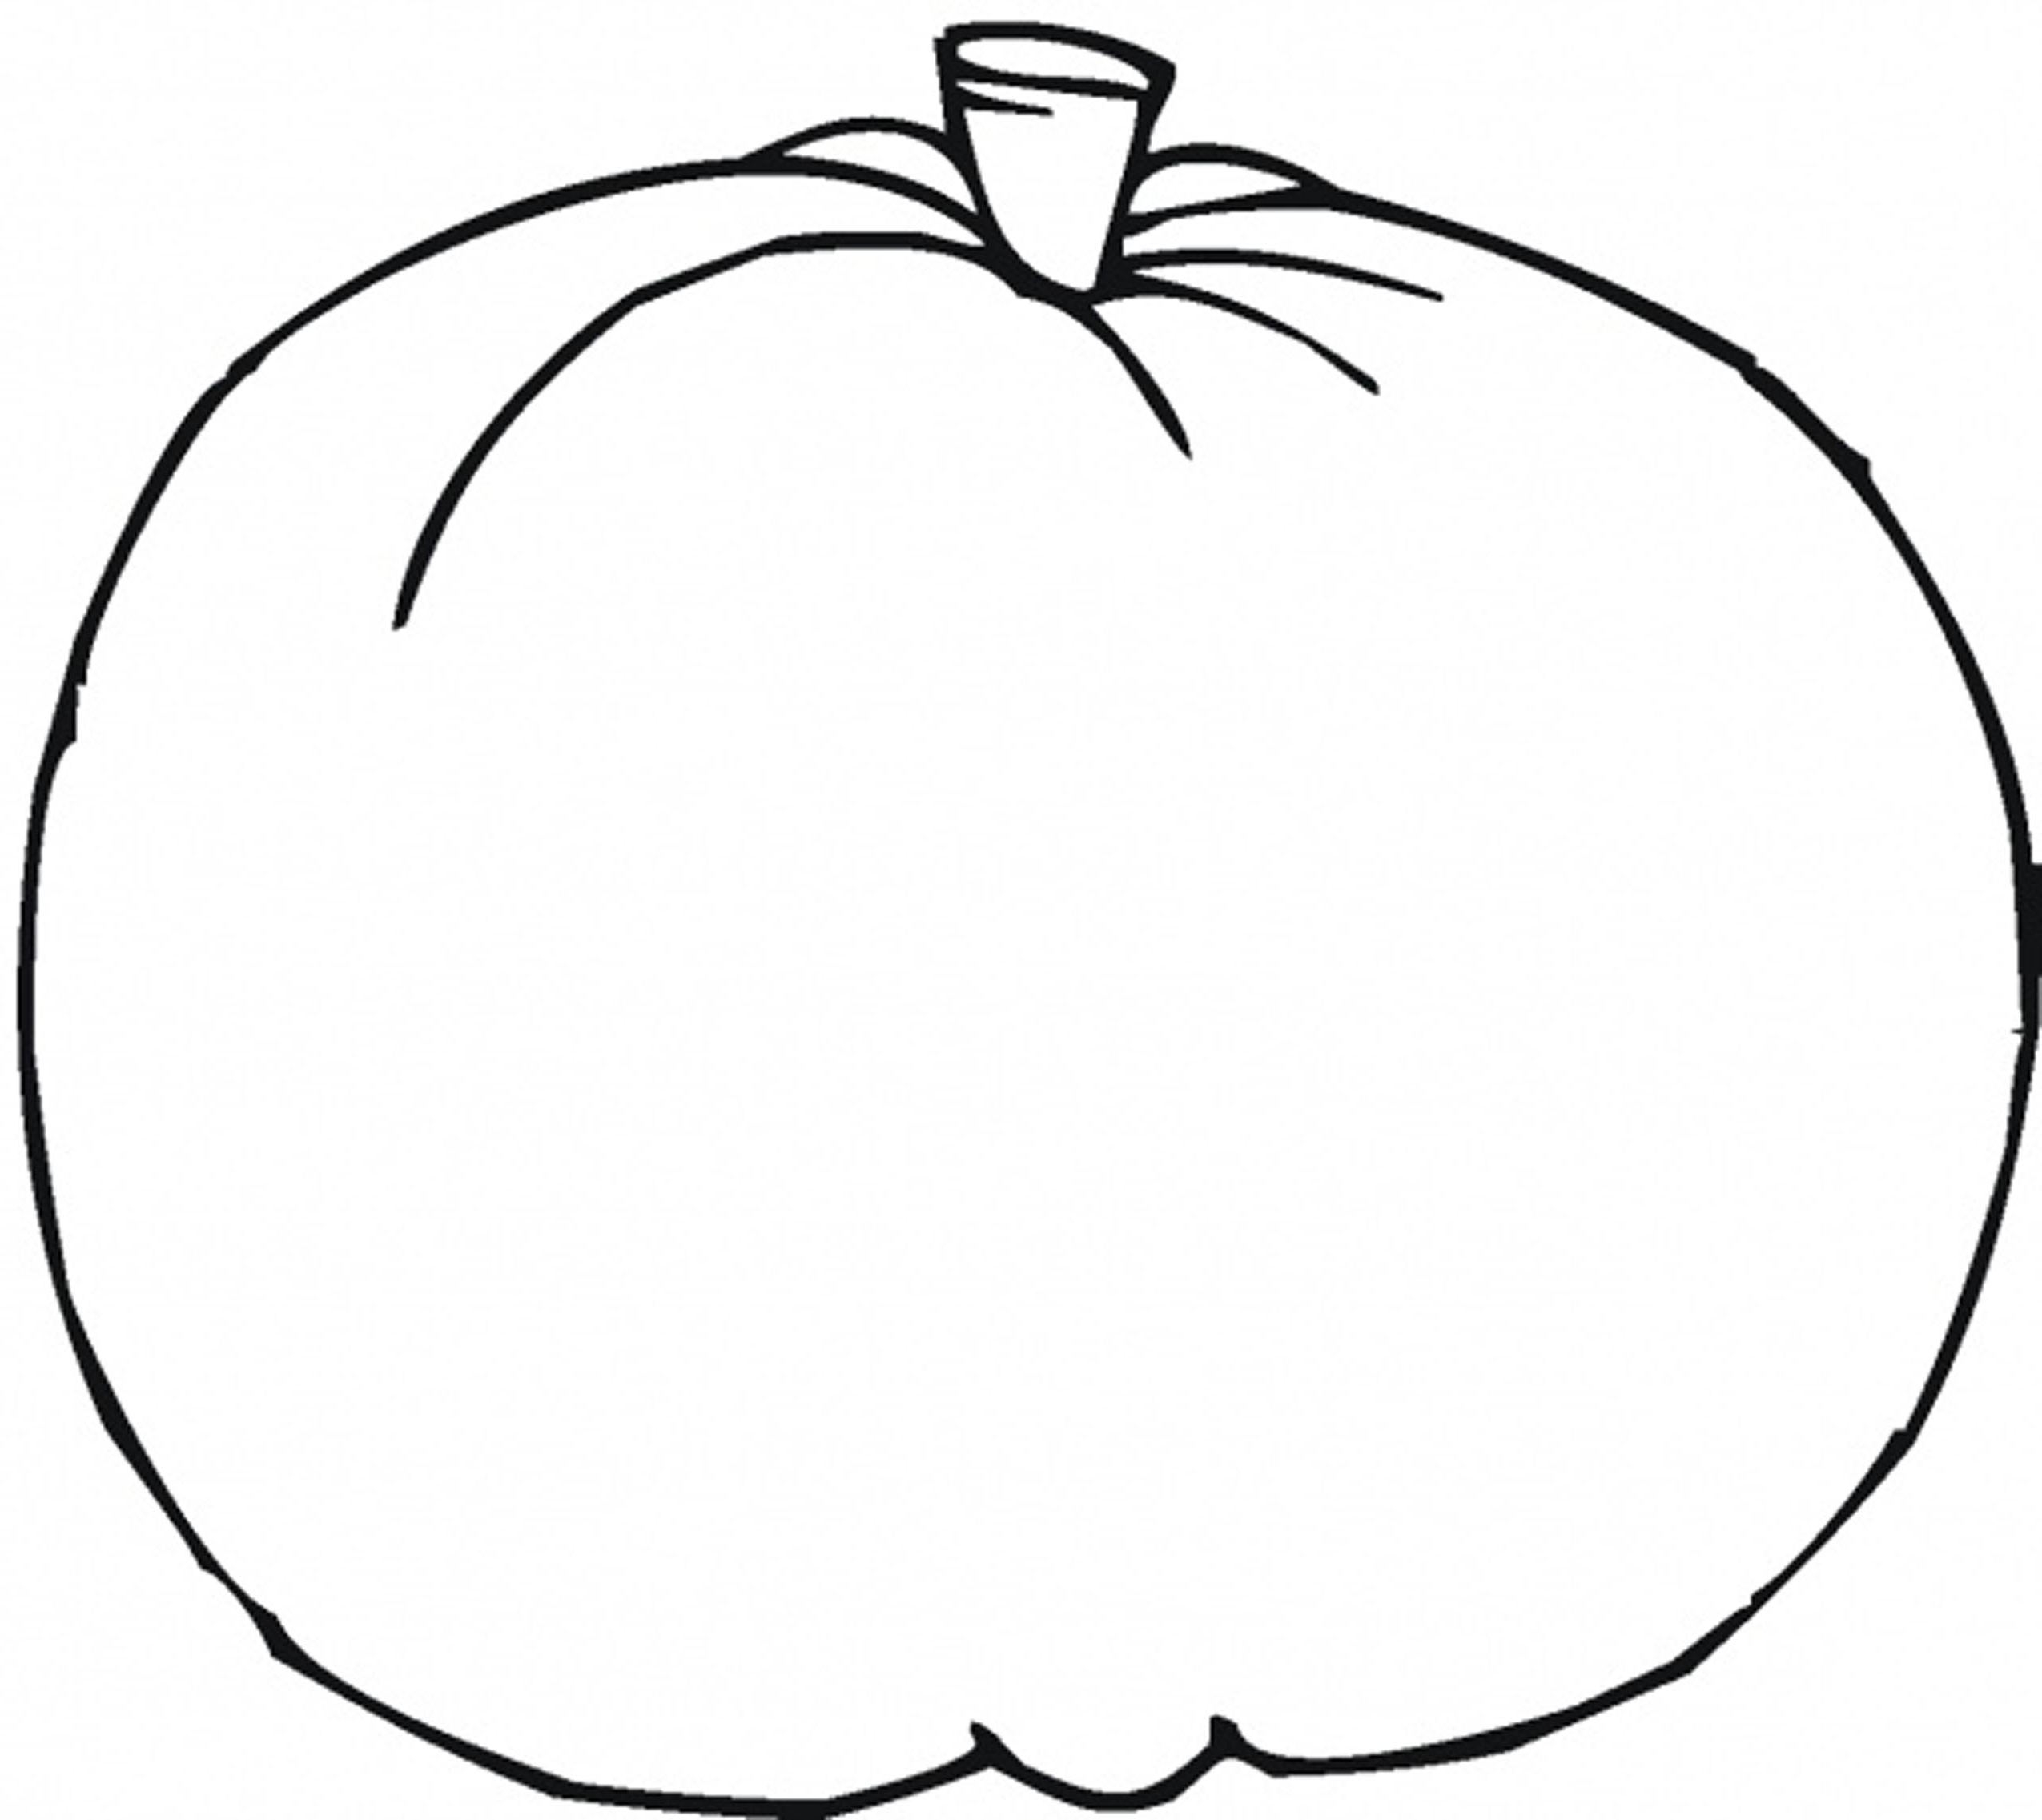 2550x2273 Fall And Funny Squirrel Coloring Pages For Kids Fall Leaves